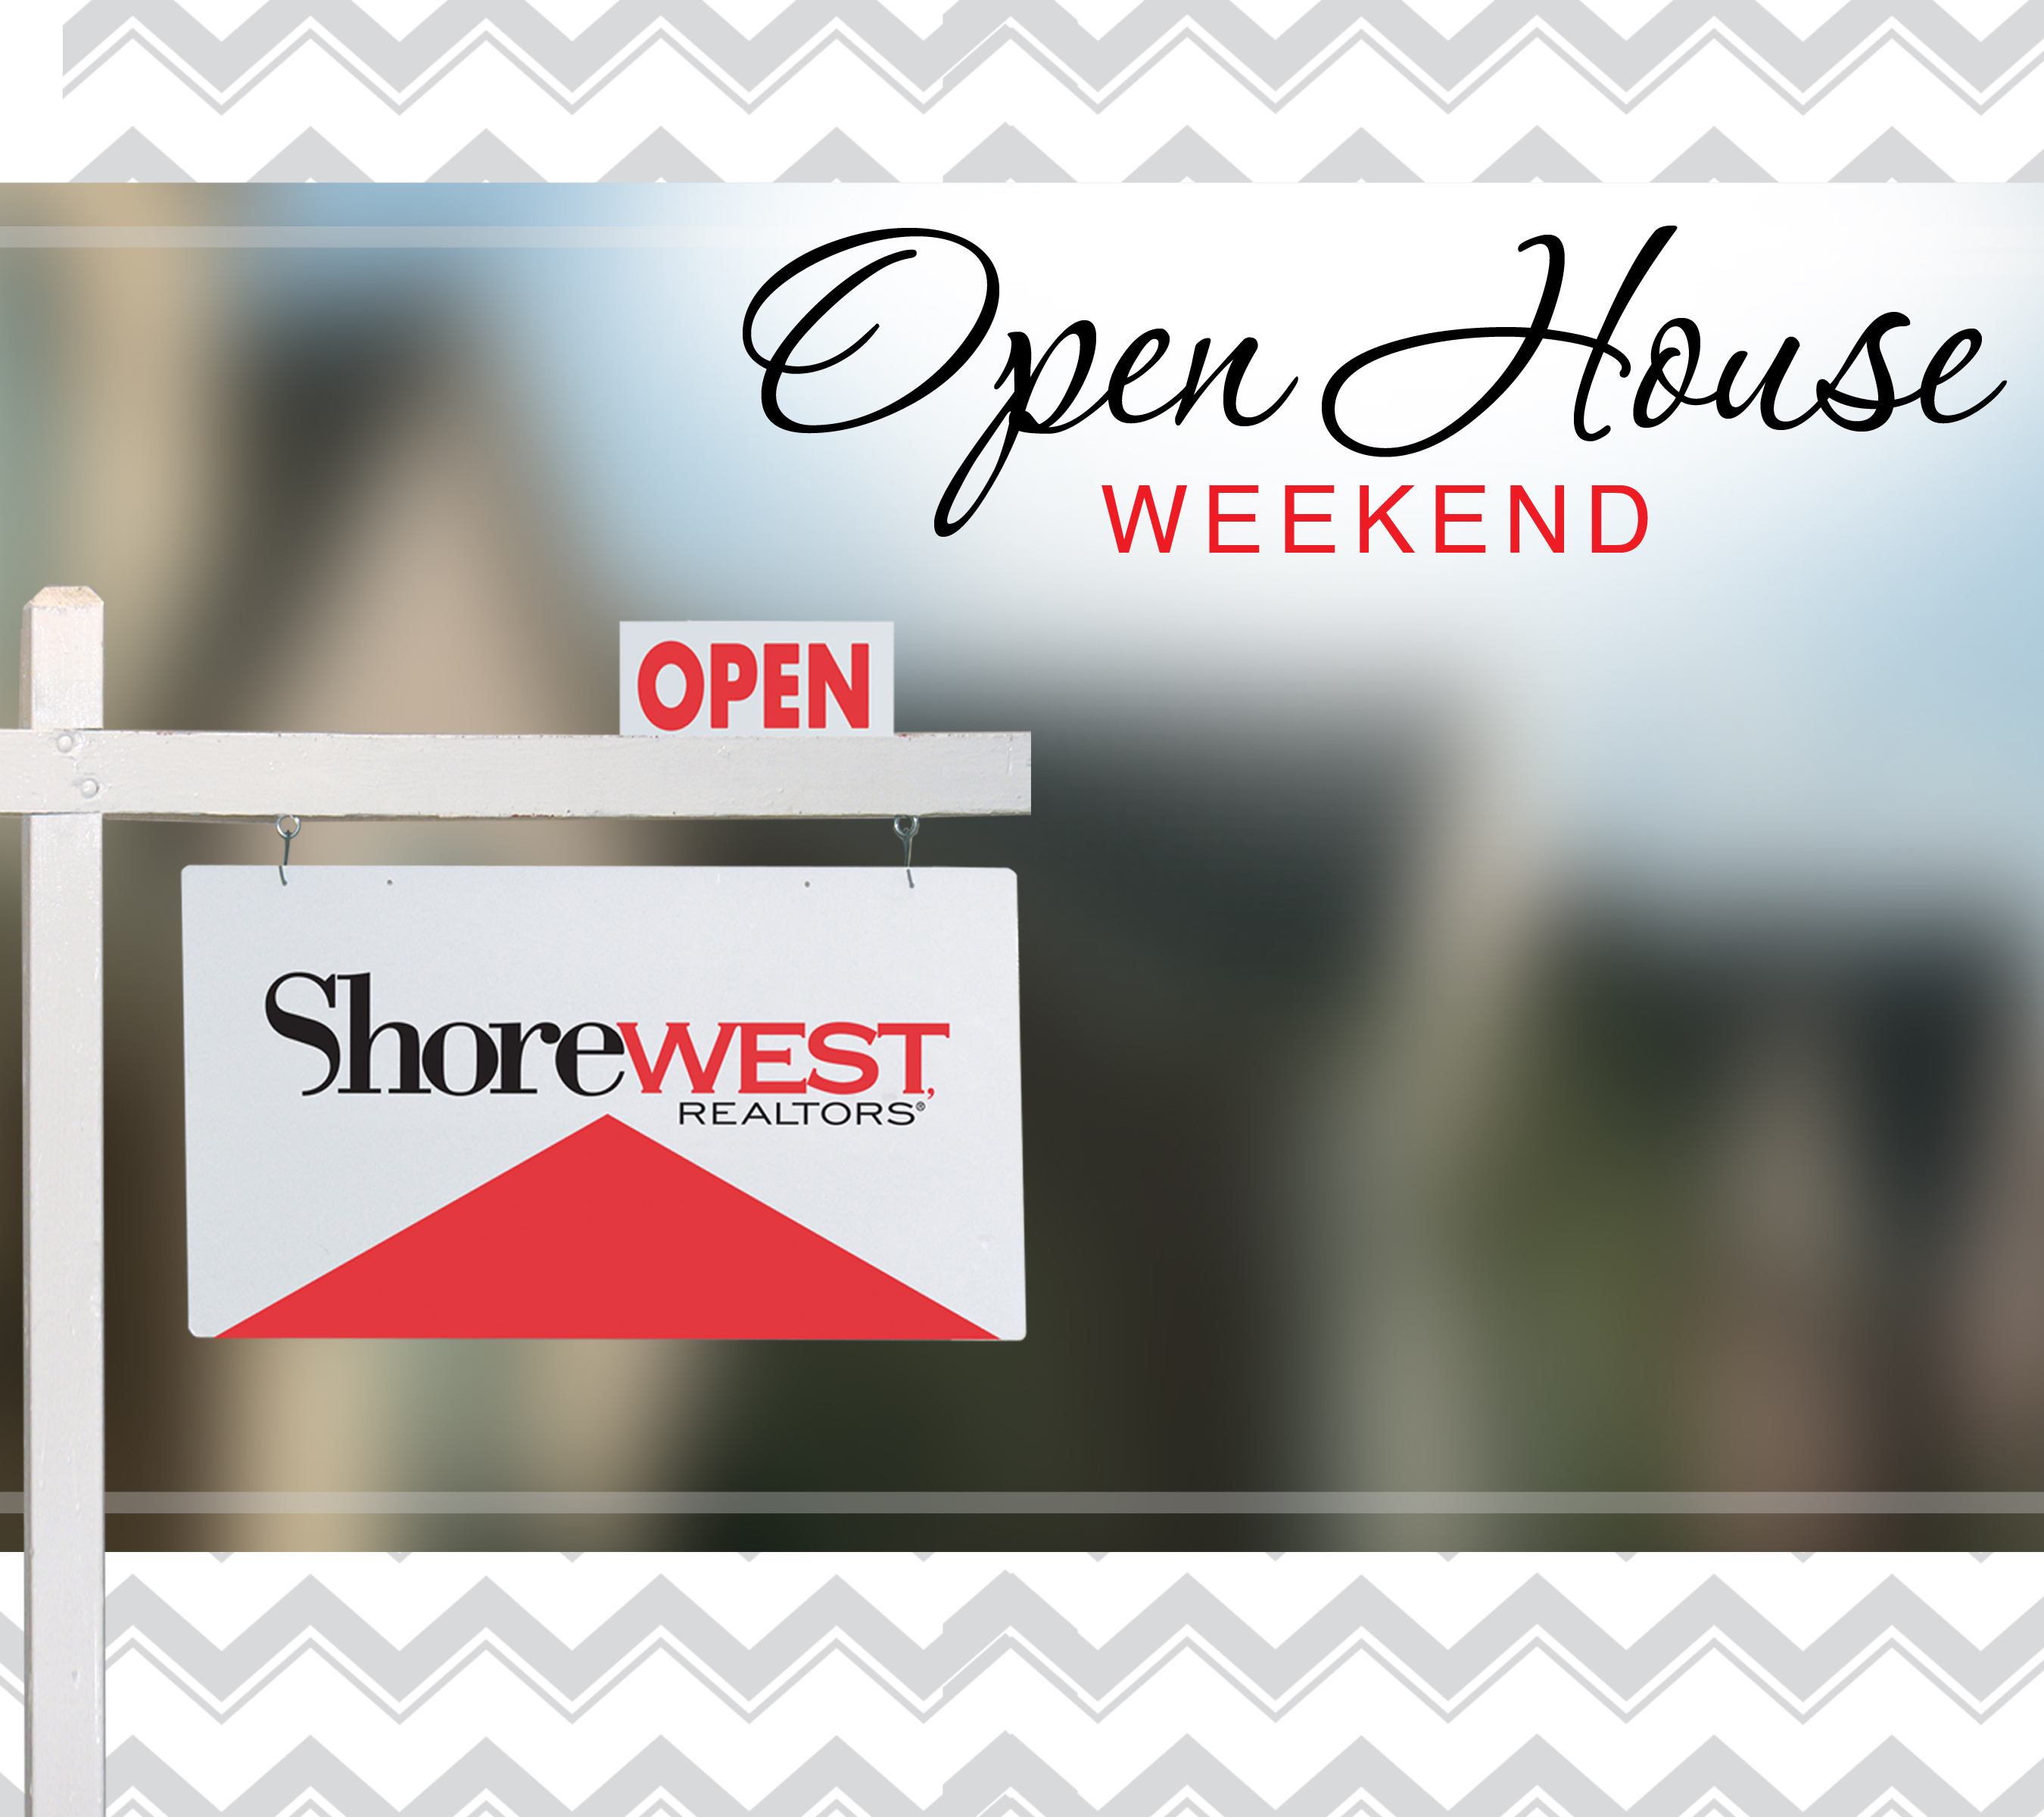 Open House Weekend Share Image